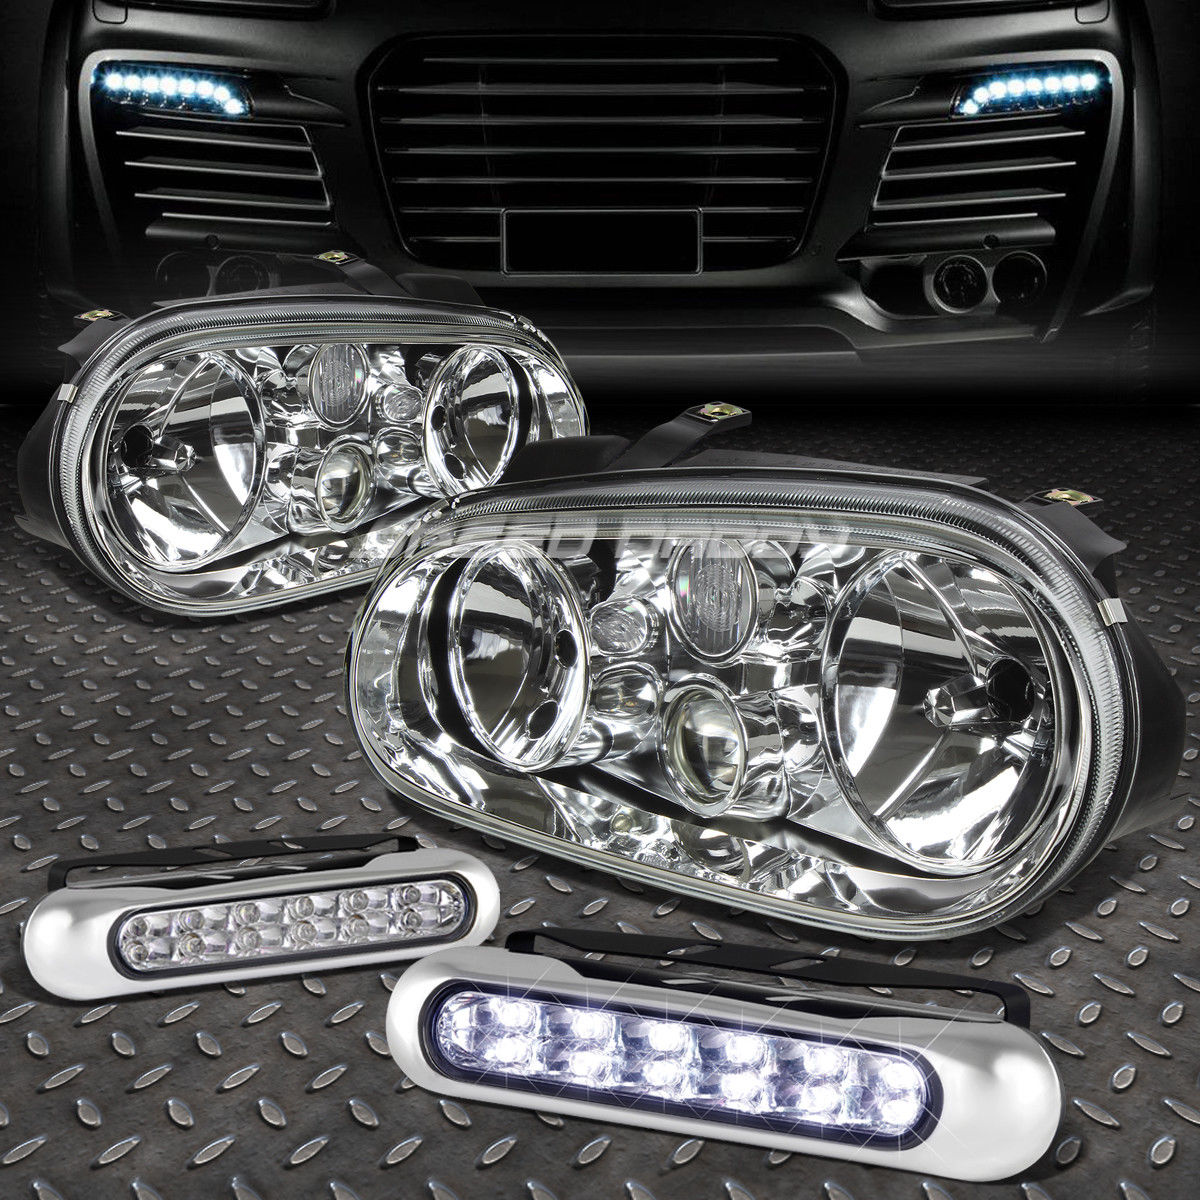 フォグライト CHROME HOUSING CLEAR LENS HEADLIGHT+12 LED GRILL FOG LIGHT FOR 99-06 GOLF MK4 CHROME HOUSING CLEAR LENS HEADLIGHT + 99-06ゴルフMK4用LEDグリルフォグライト